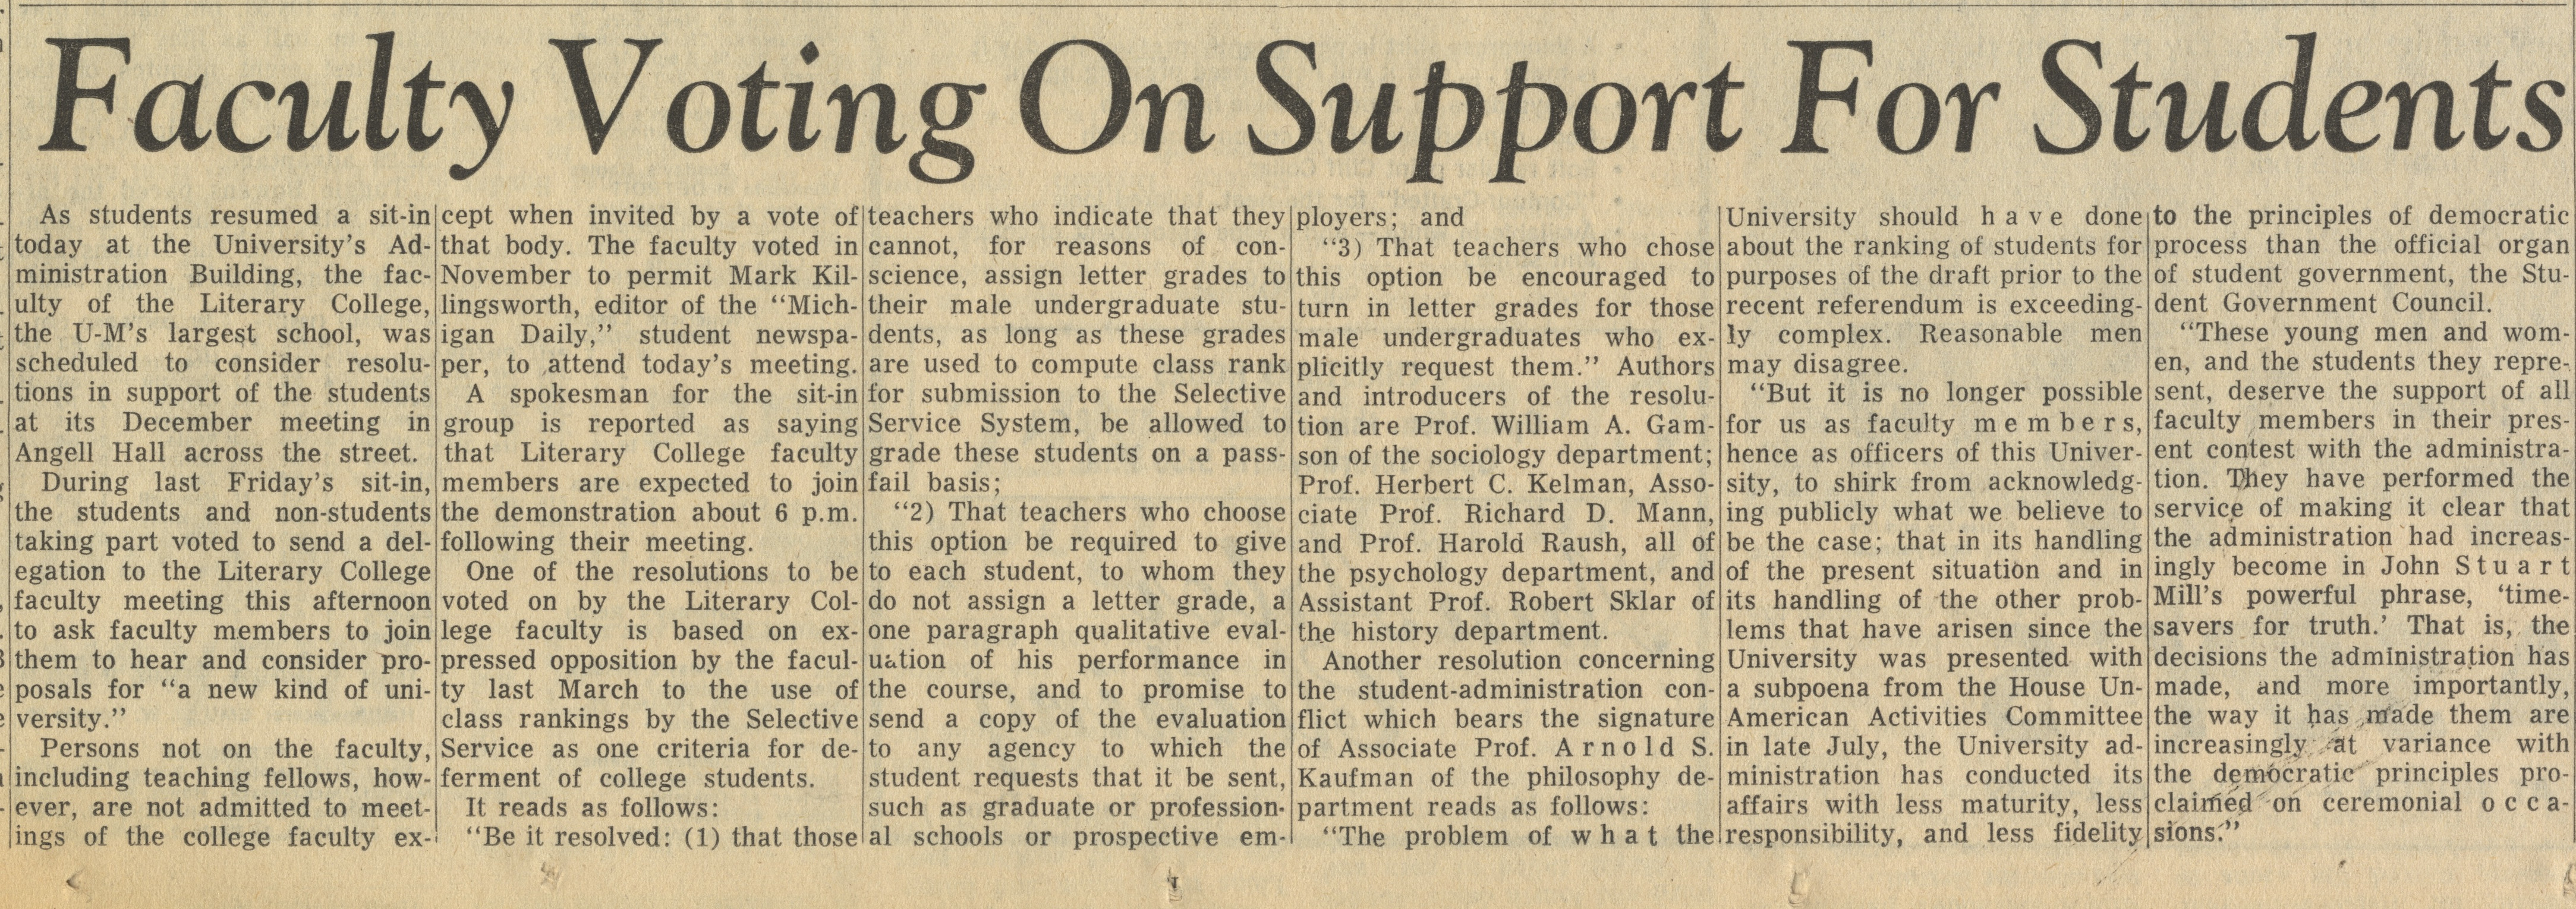 Faculty Voting On Support For Students image